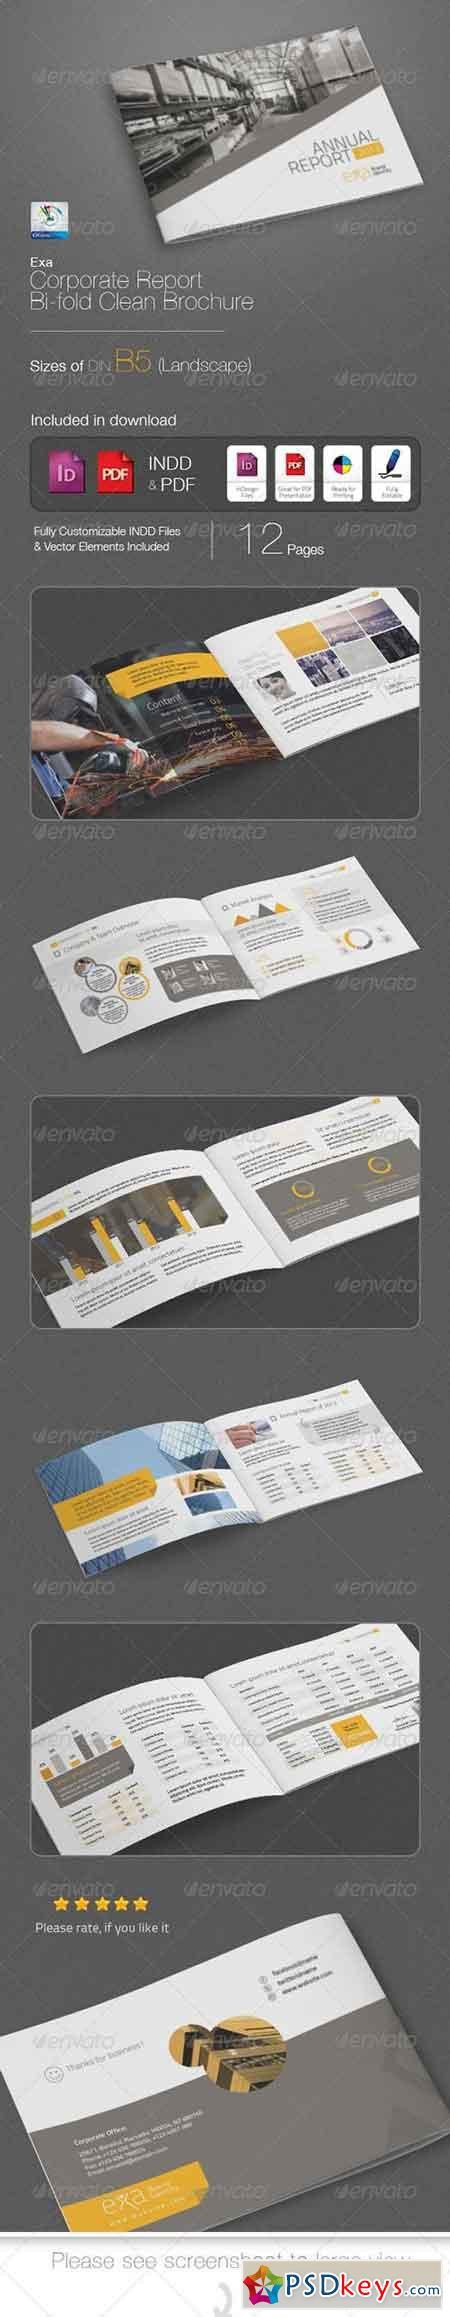 Exa Business Report B5 Brochure 4916819